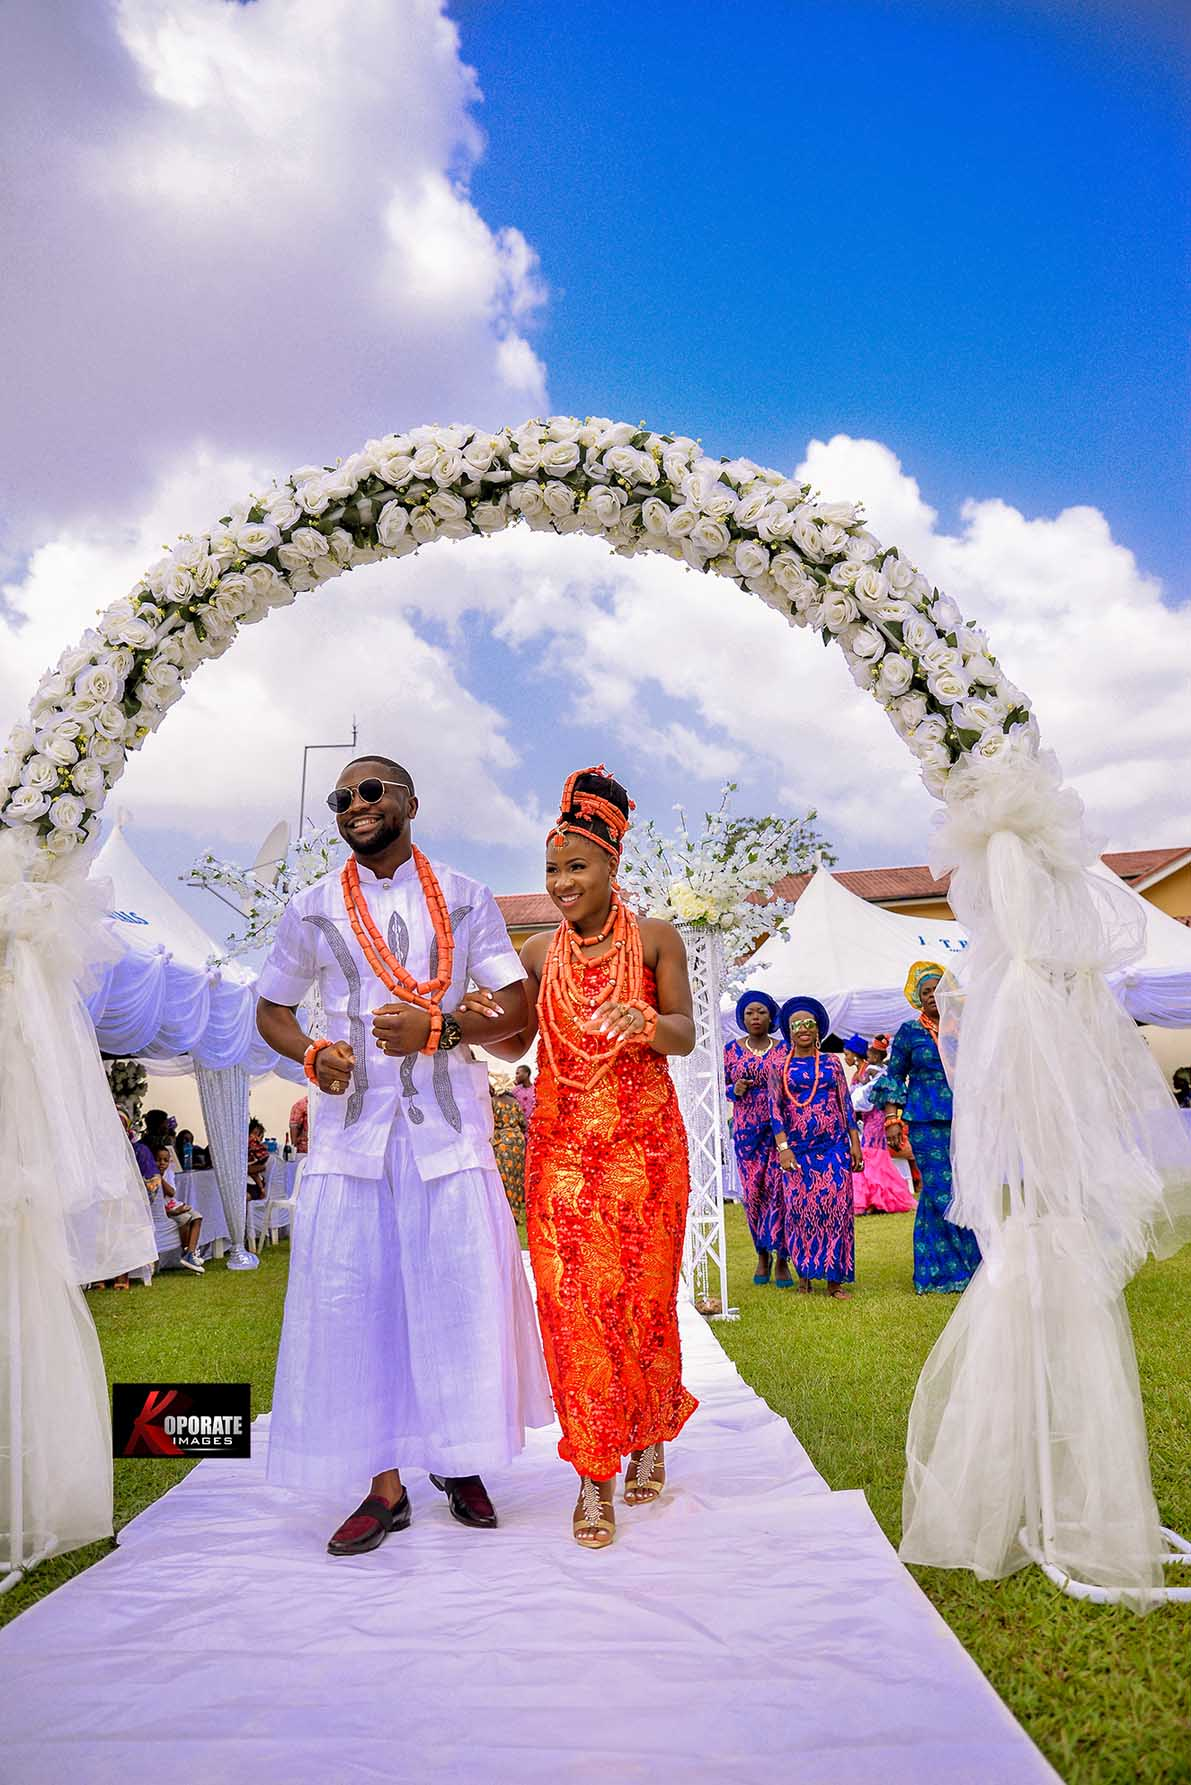 Amazing Wedding Pictures Photos Koporate Images Photography Video Coverage Studio In Benin